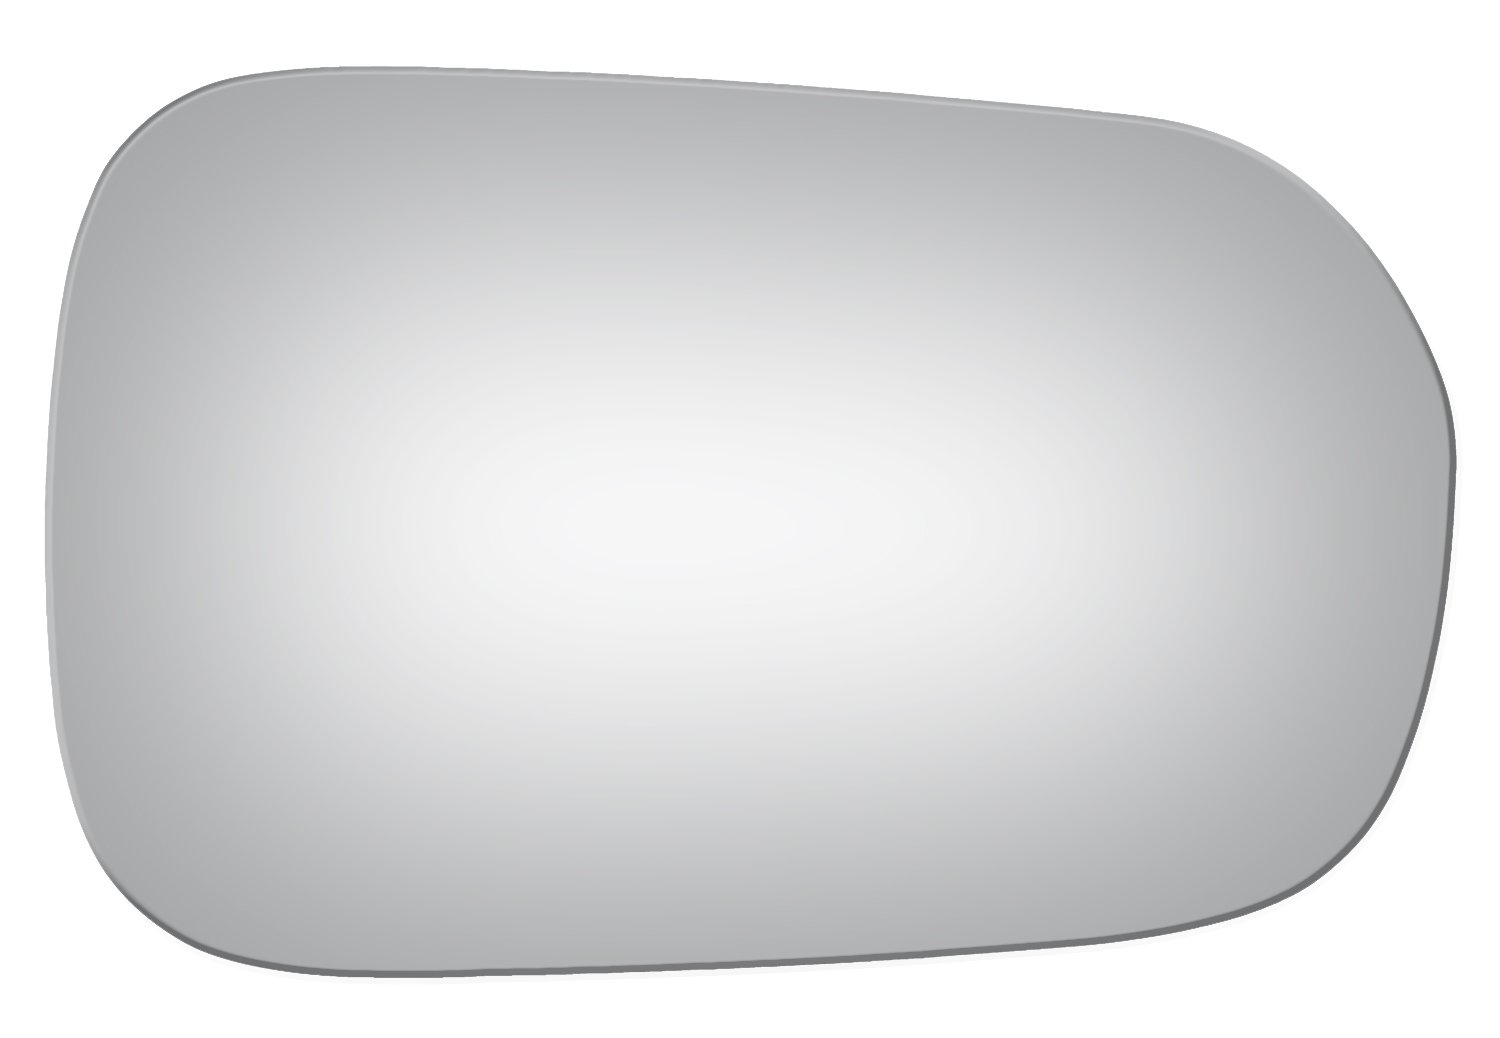 2002, 2003, 2004, 2005, 2006 Burco 3728 Convex Passenger Side Replacement Mirror Glass for 02-06 Acura RSX